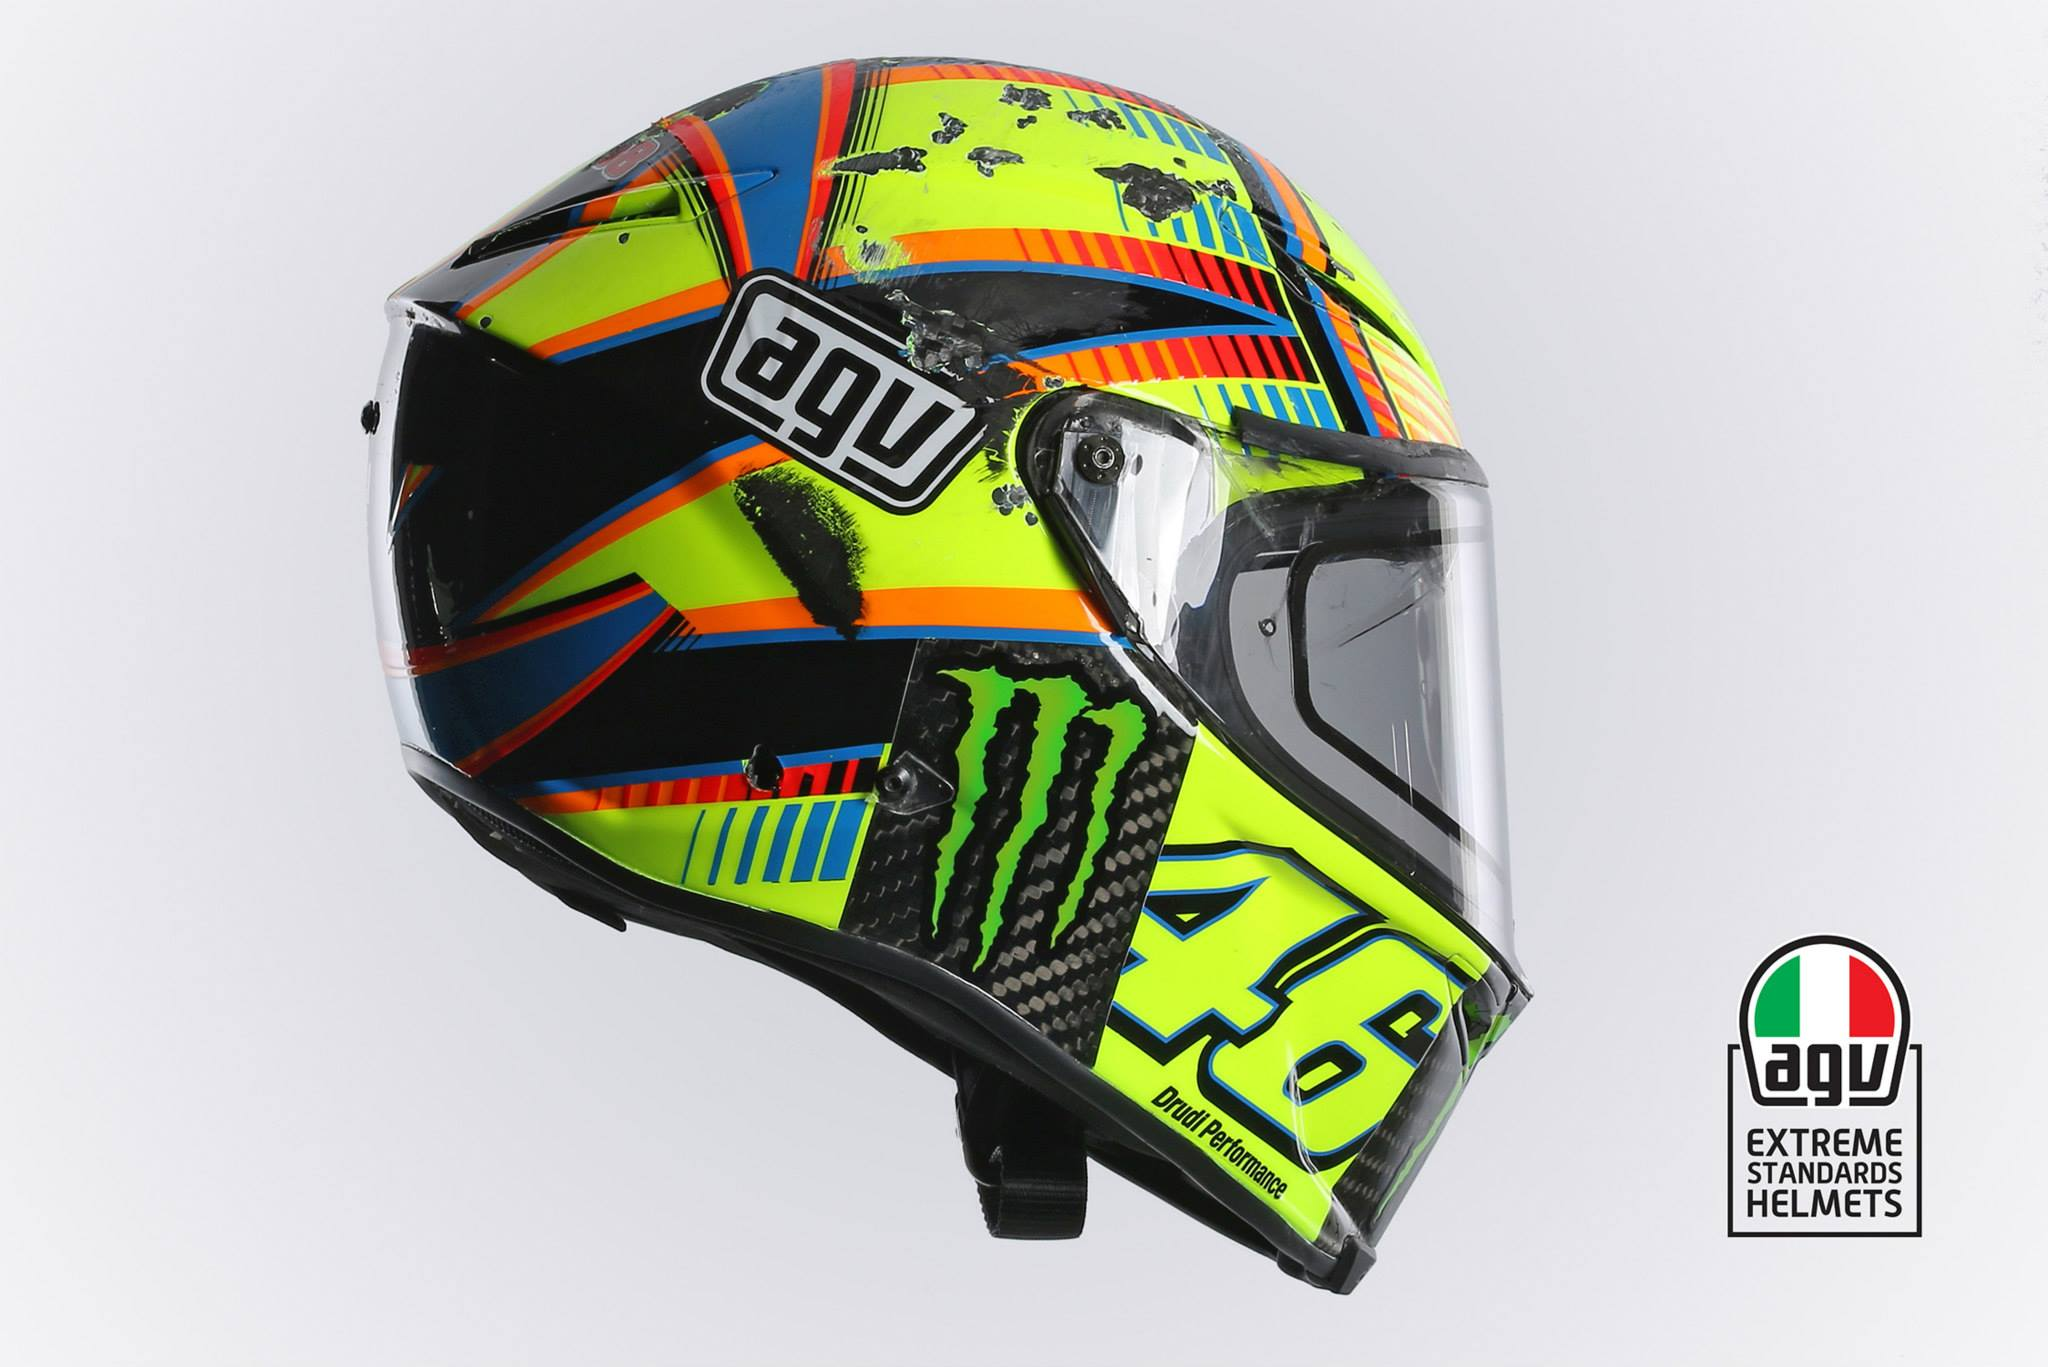 helm, agv, rossi